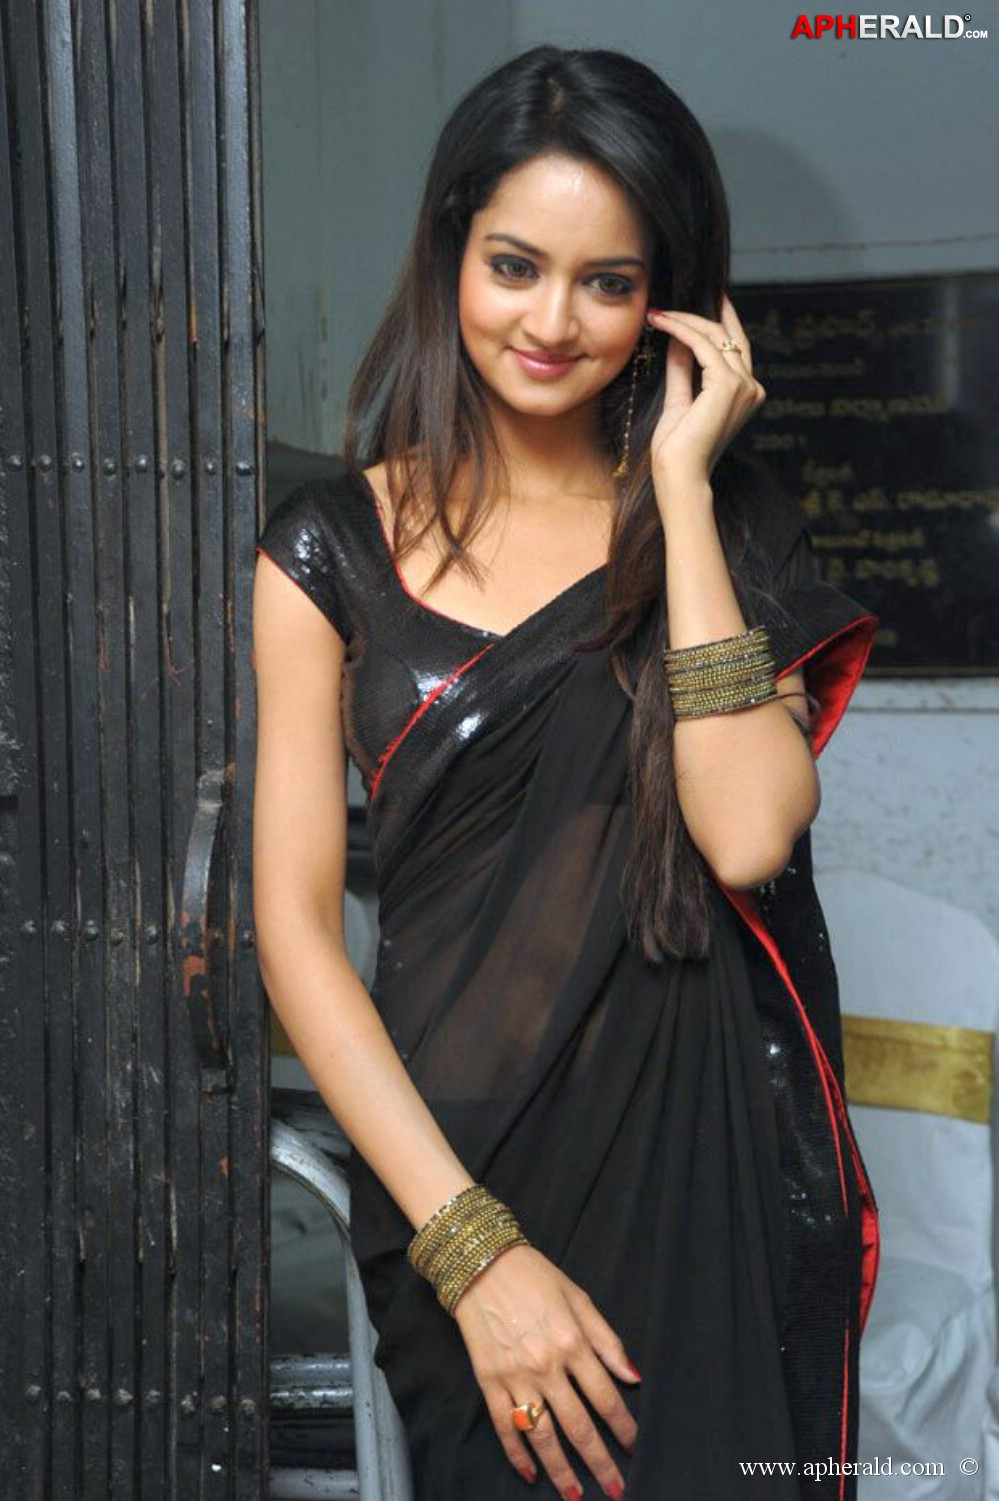 Hot sexy shanvi porn nude fake photos that's something